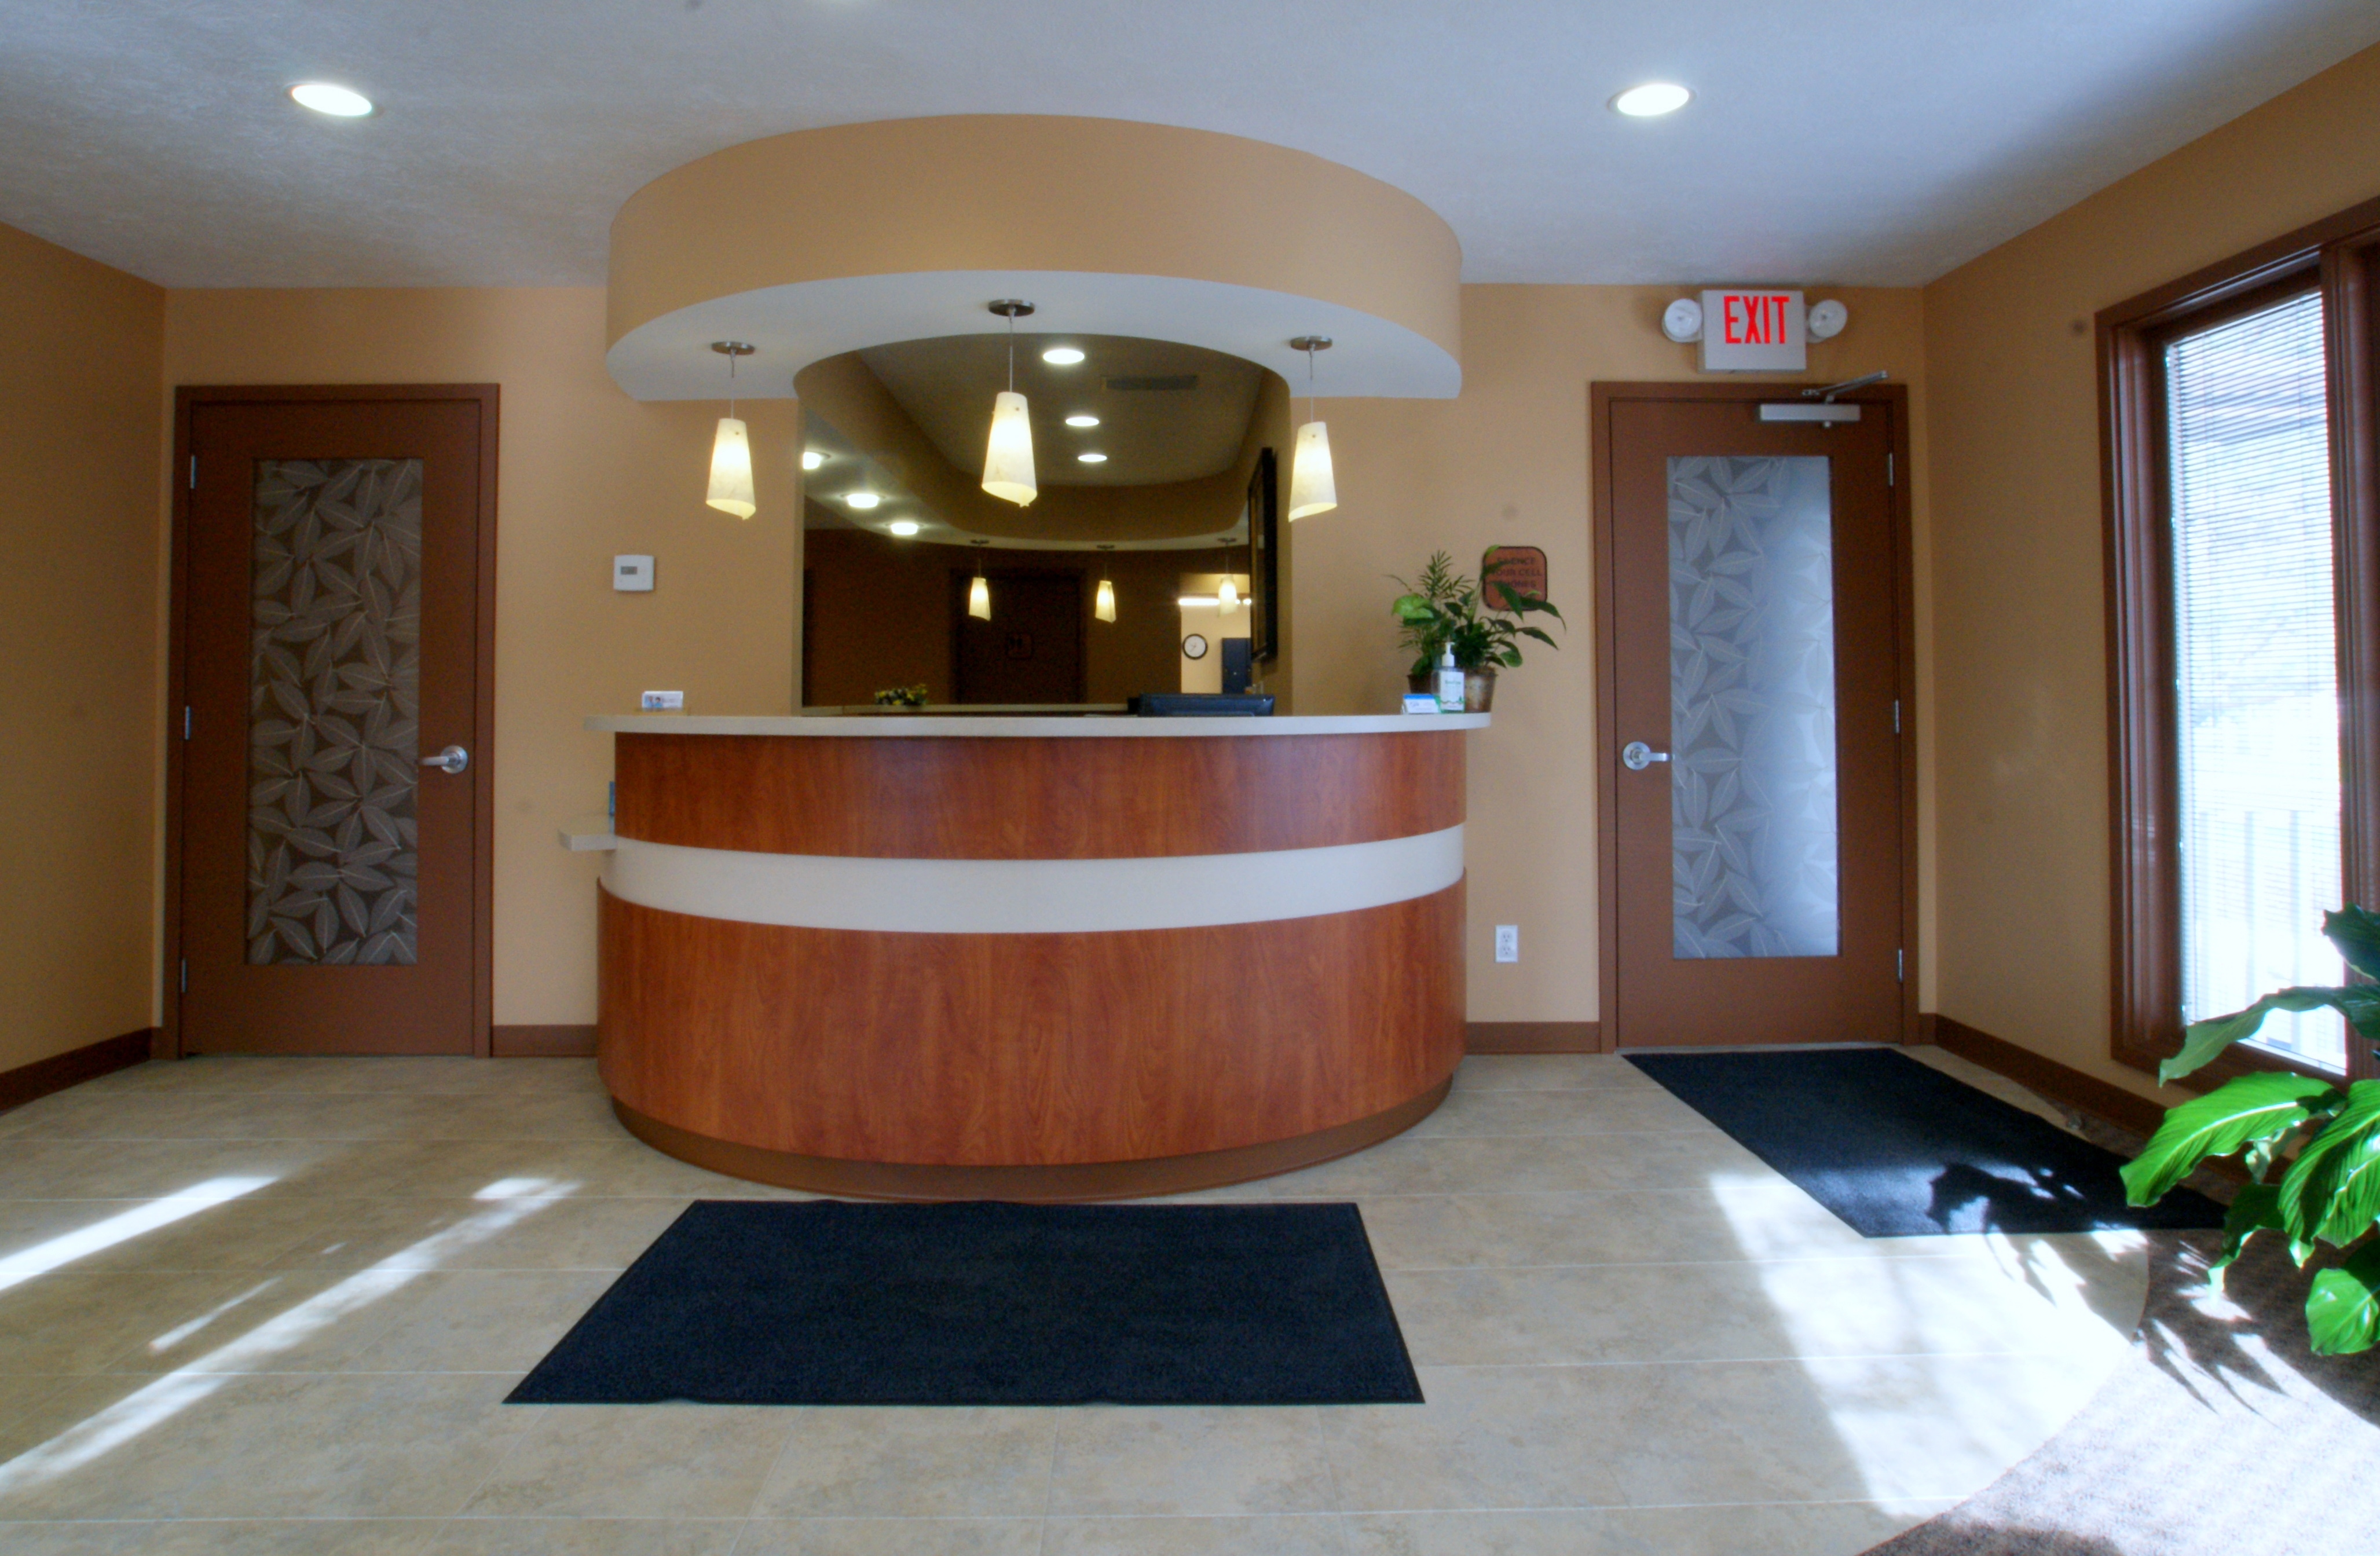 Quick Look at a Dental Office Design Element - Küster Dental Weblog